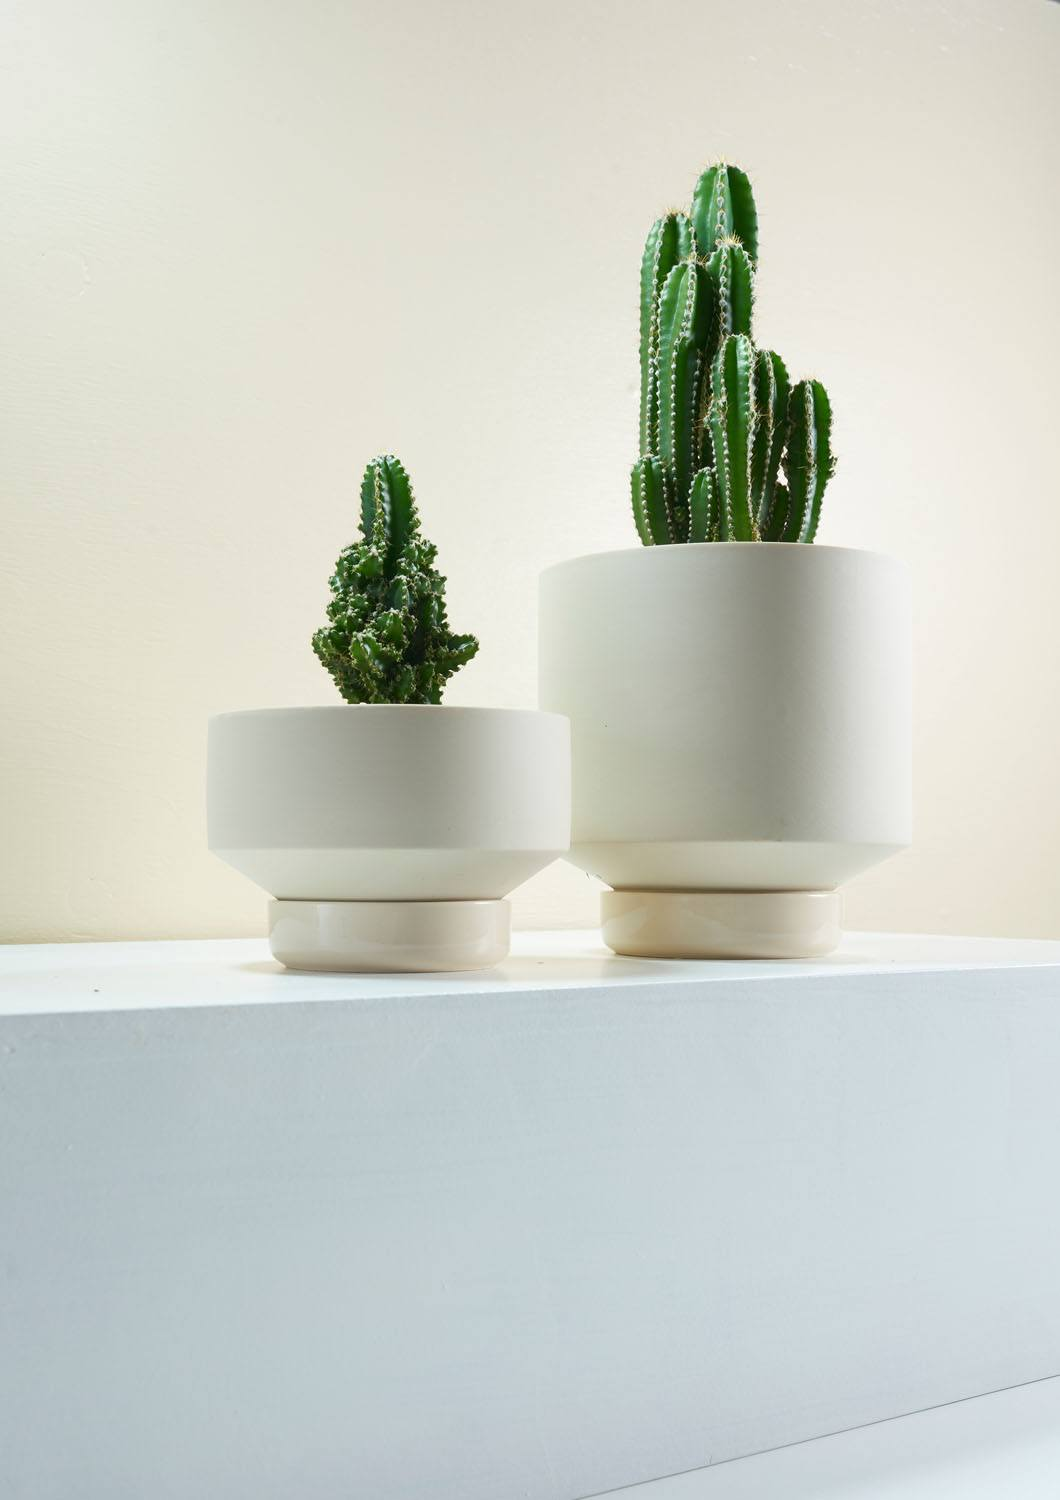 Angus & Celeste Collectors Gro Pots Clay Styled